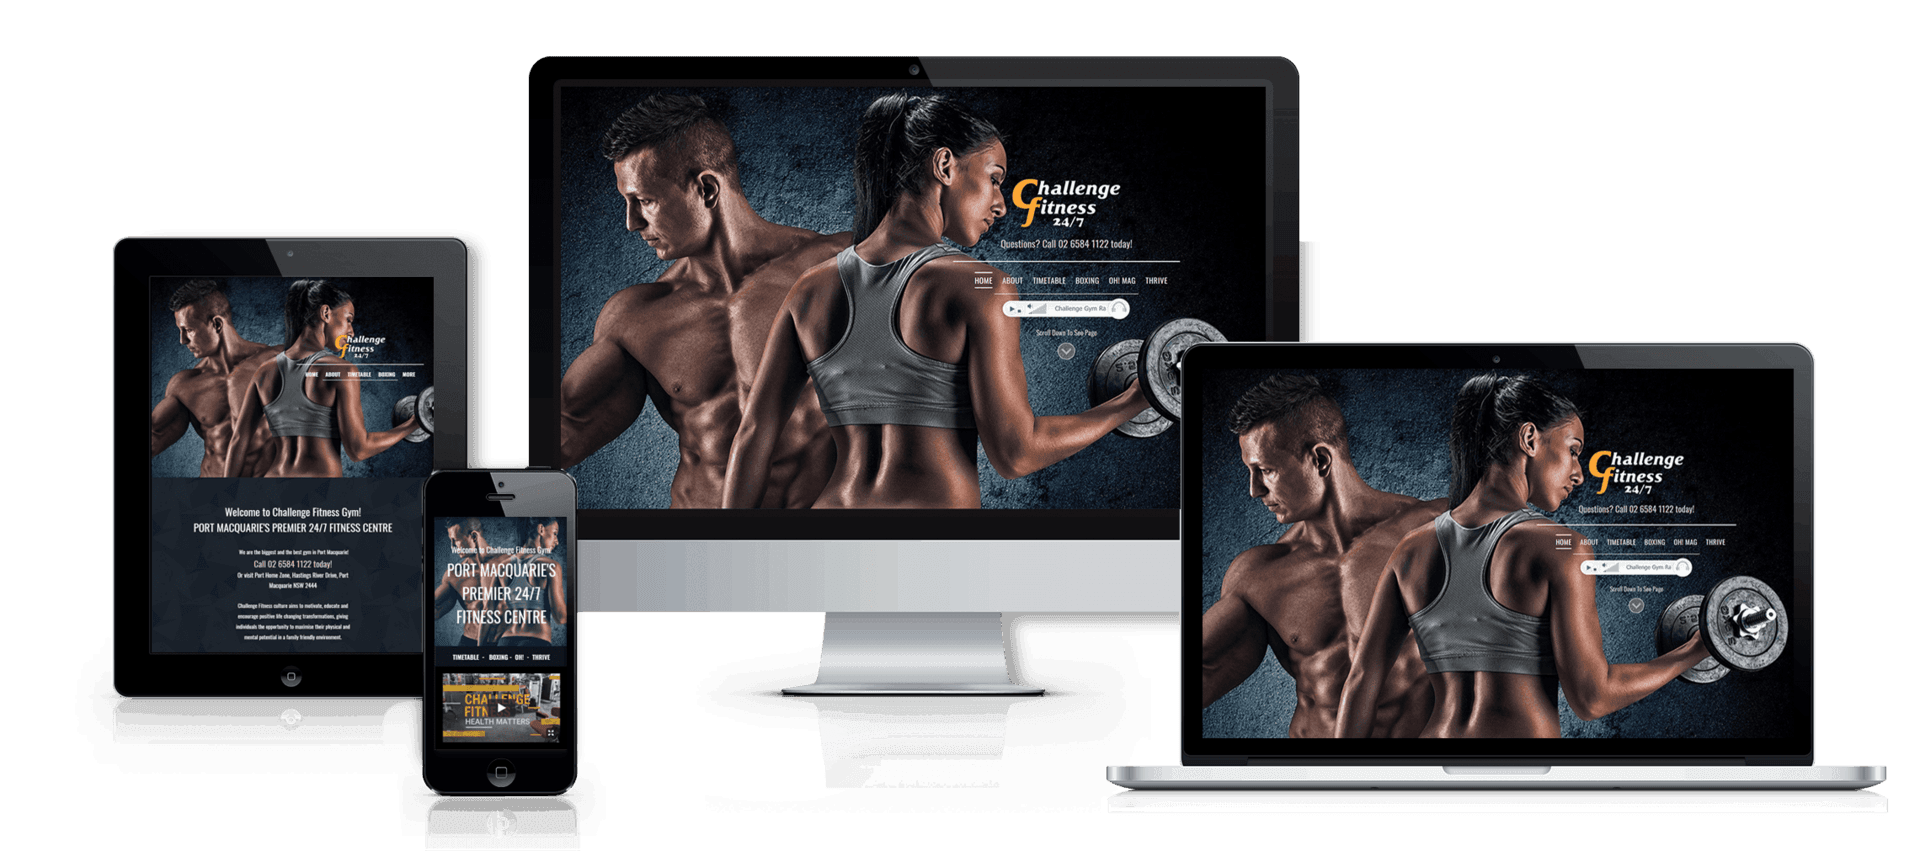 Edgezone Media client Challenge Fitness website image.